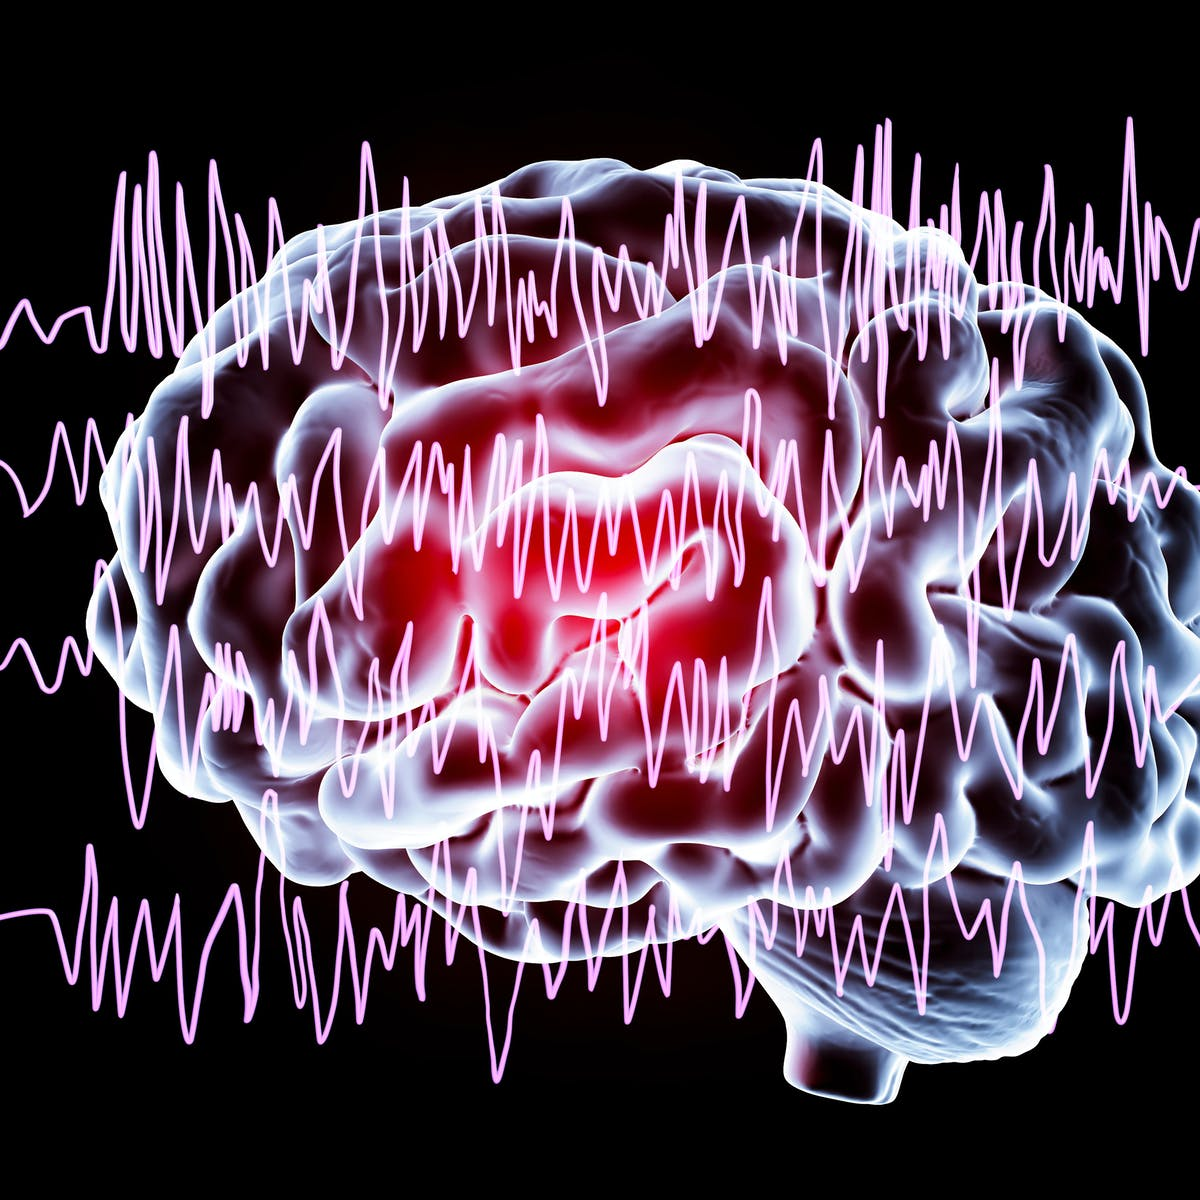 Spontaneous 'micro-earthquakes' in the brain are helping you sleep